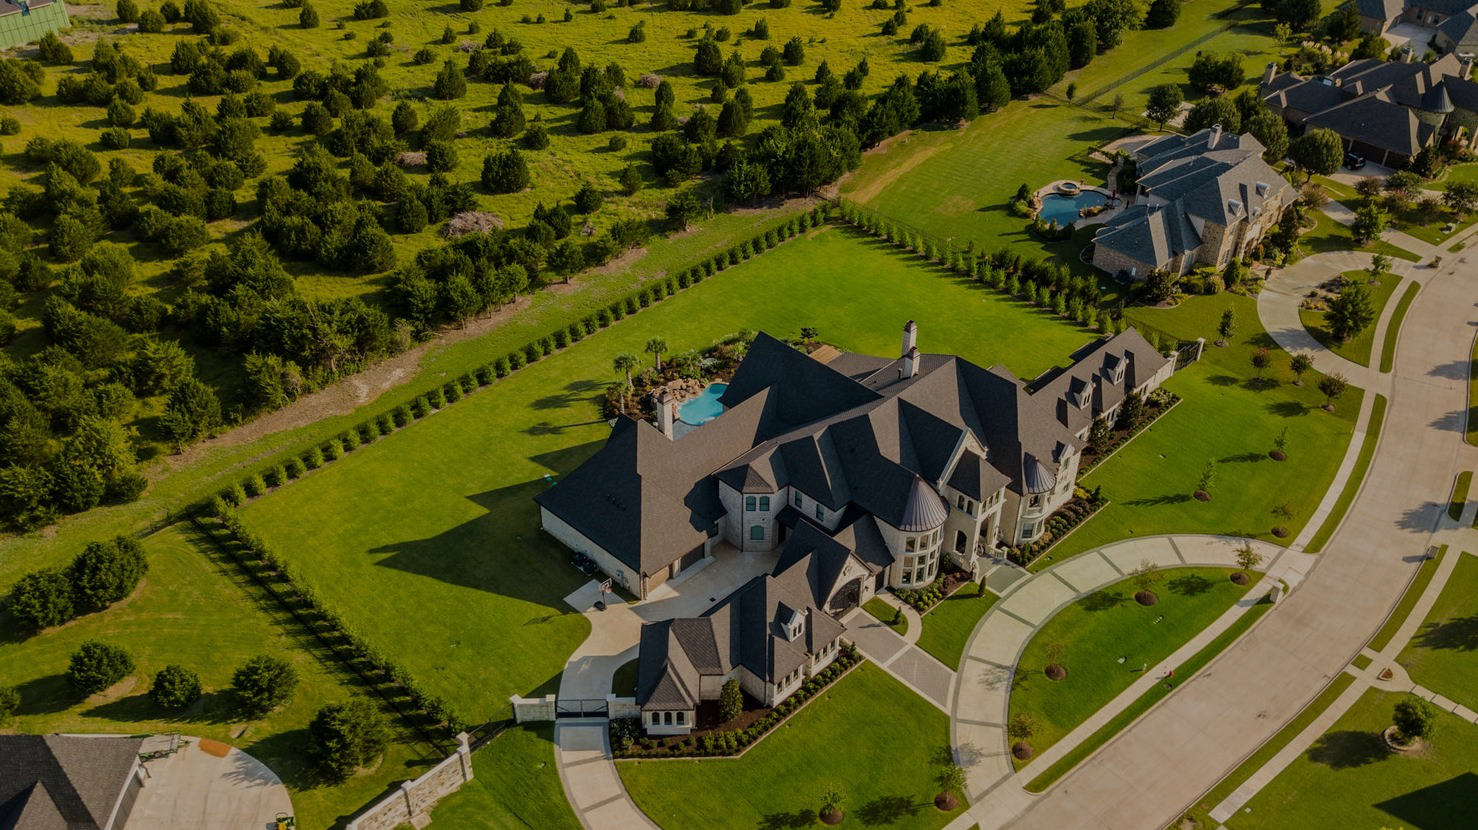 residential-real-estate-drone-view-30